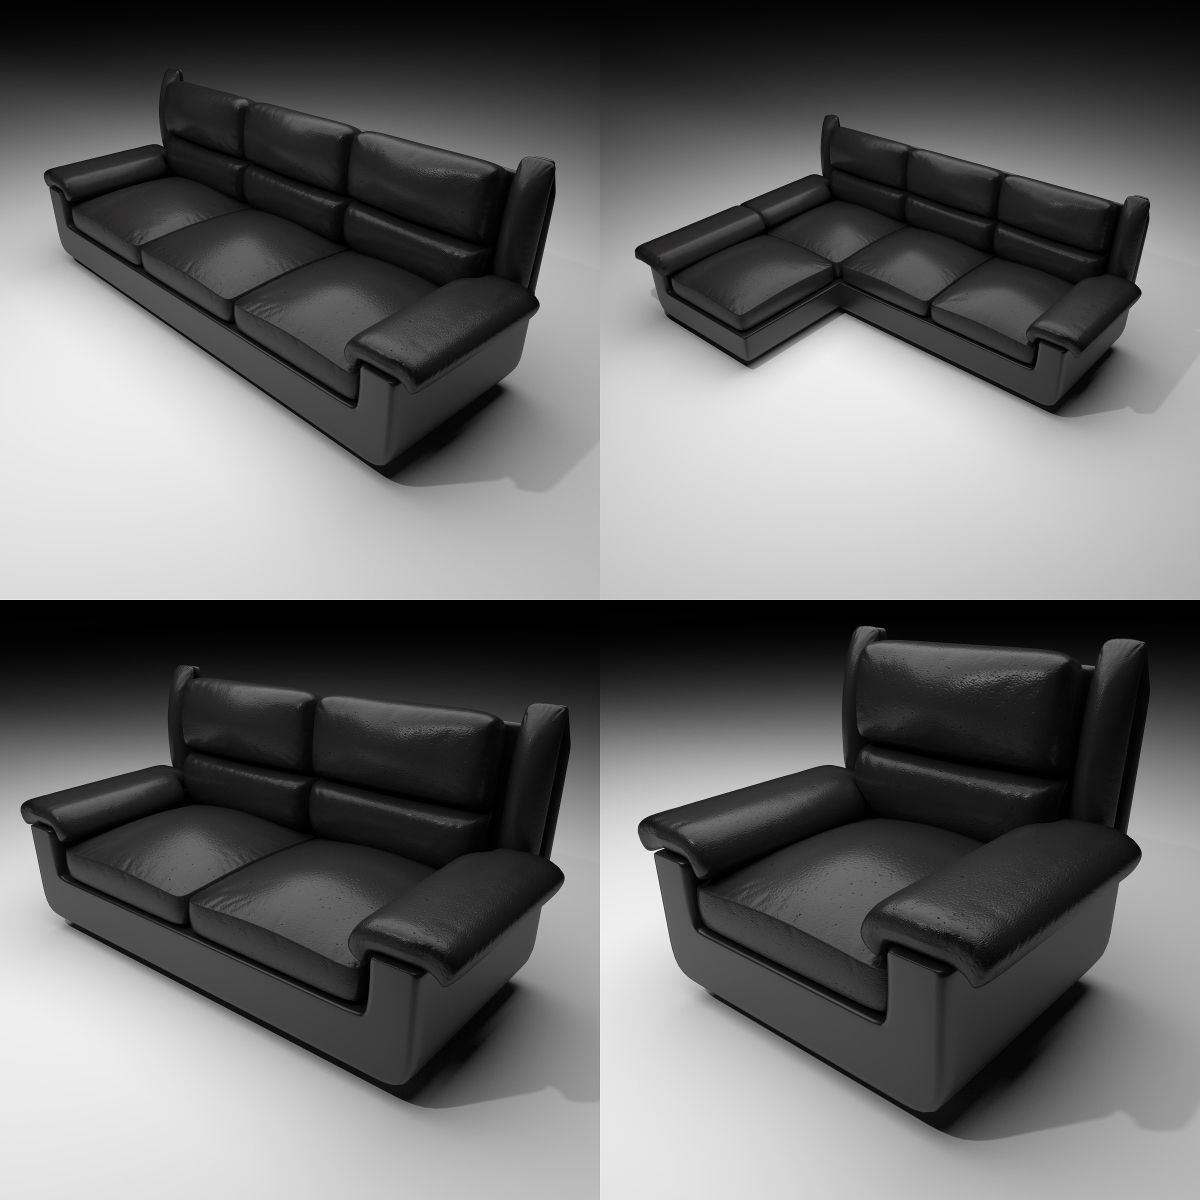 Couches 4 Couches 2 Material 4 3d Model